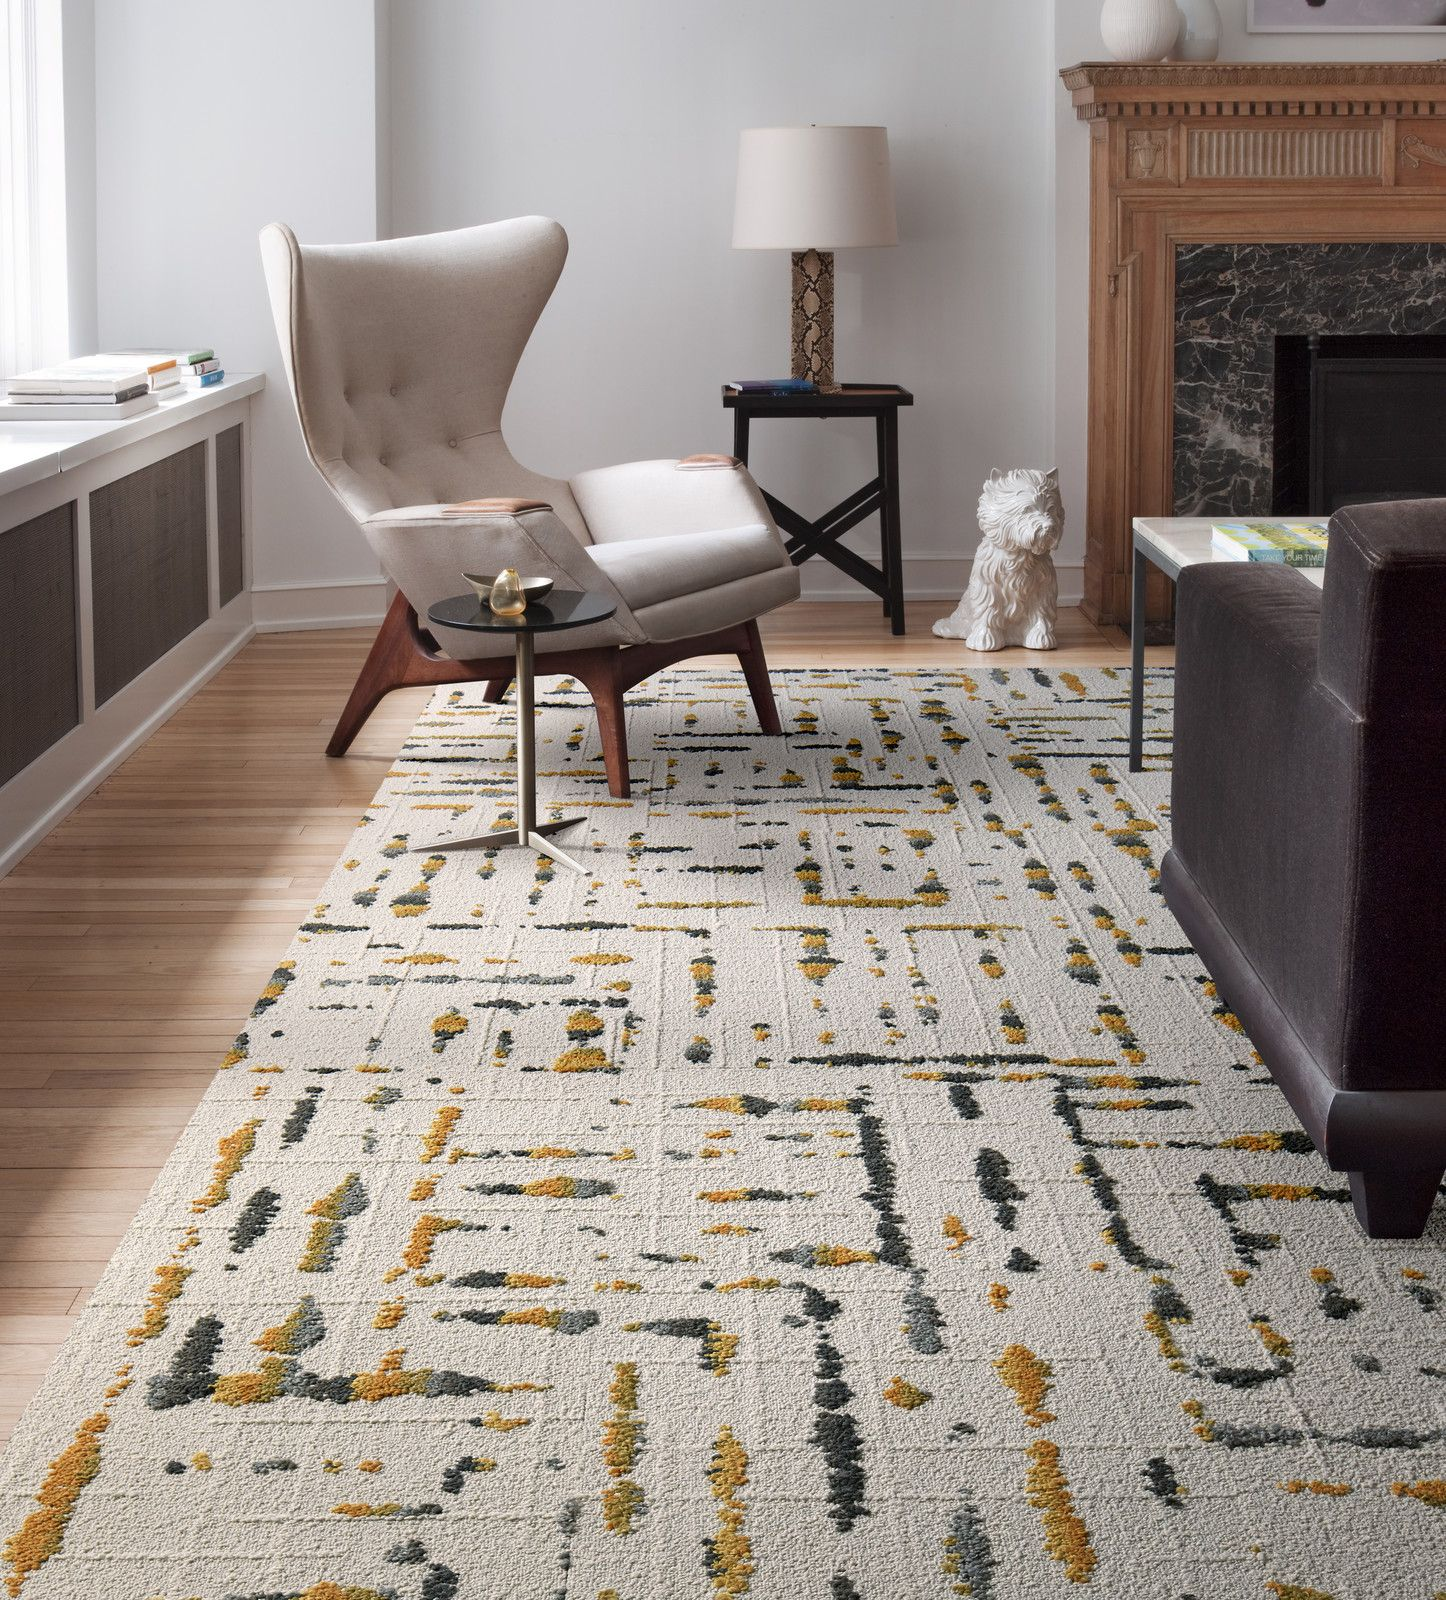 Photo 2 of 5 in Mix and Match the New FLOR Rug Styles to